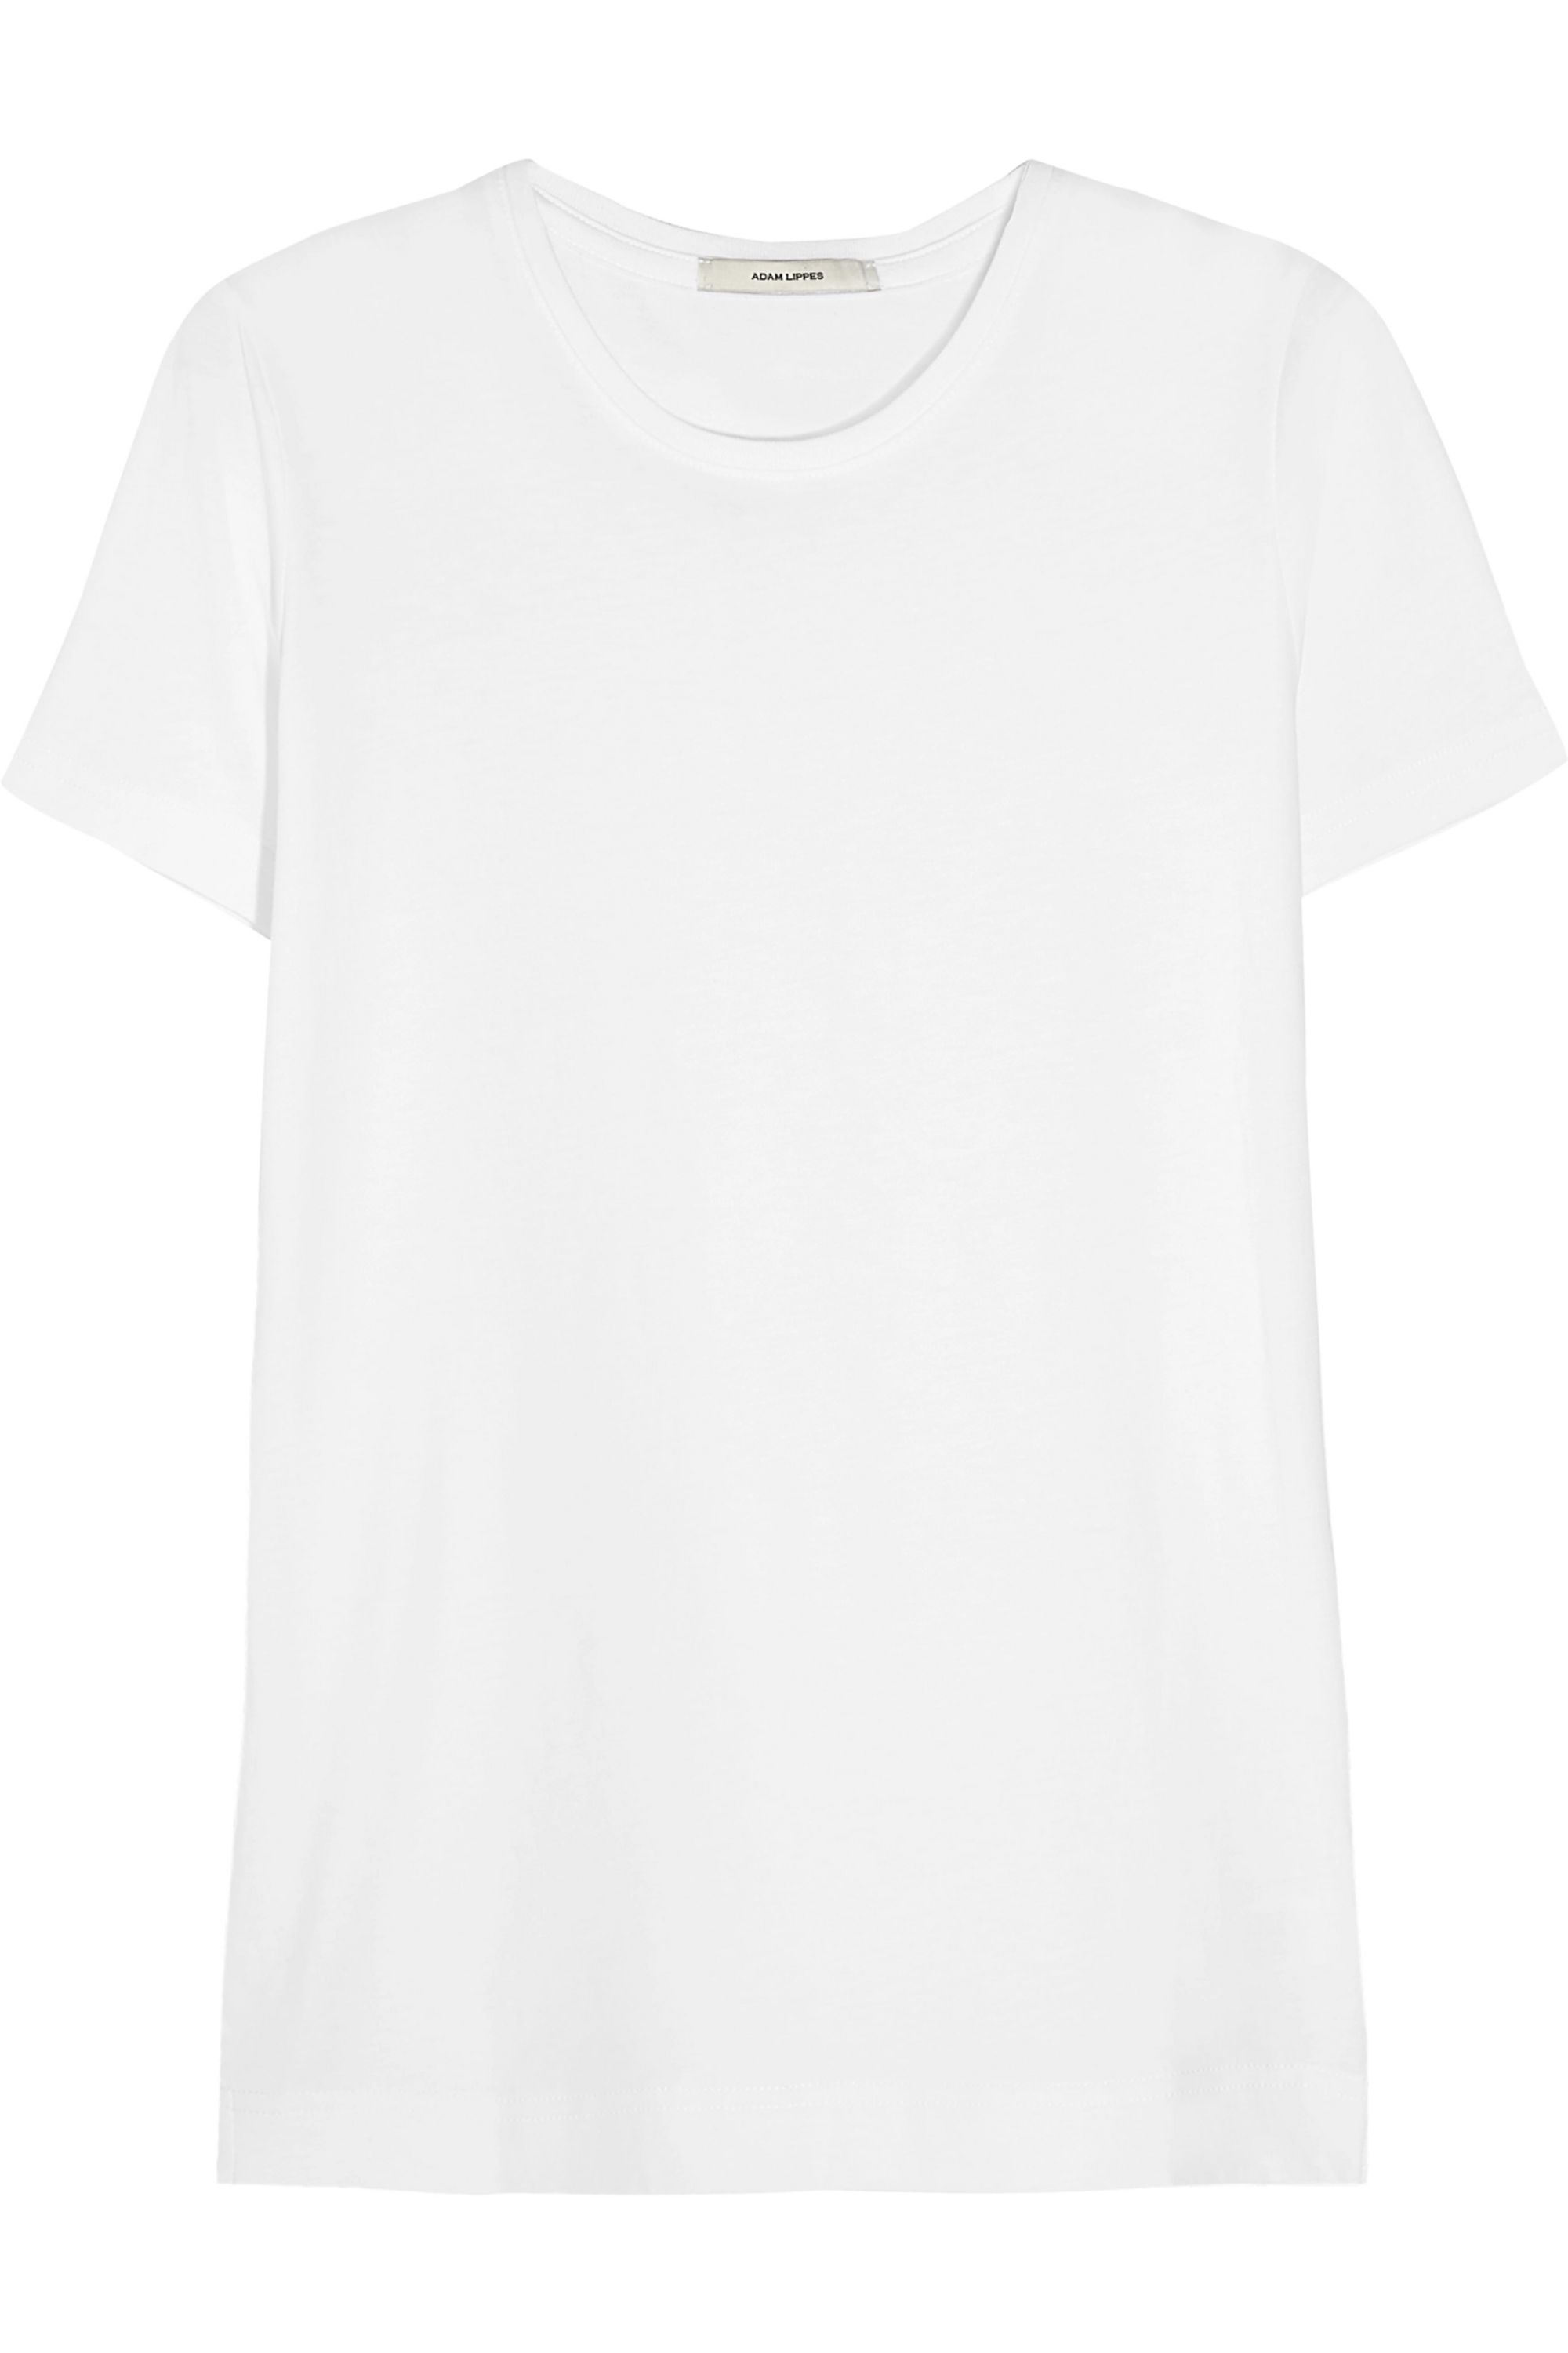 Adam Lippes Pima cotton T-shirt